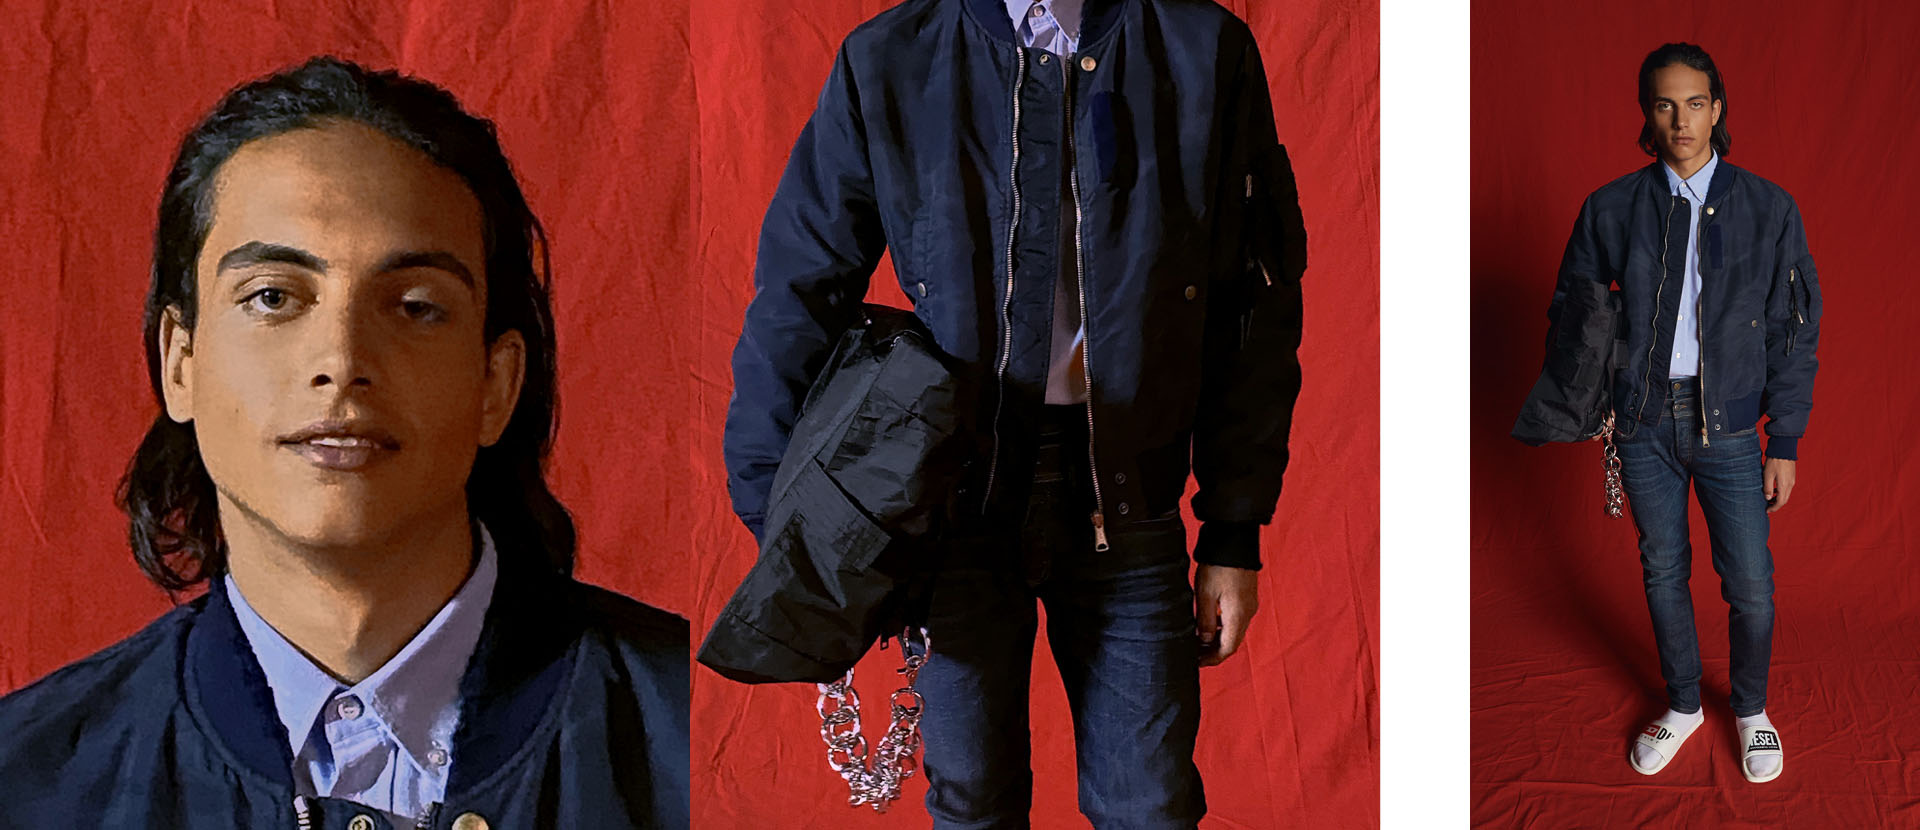 Shop the new Fall/Winter Collection on Diesel.com